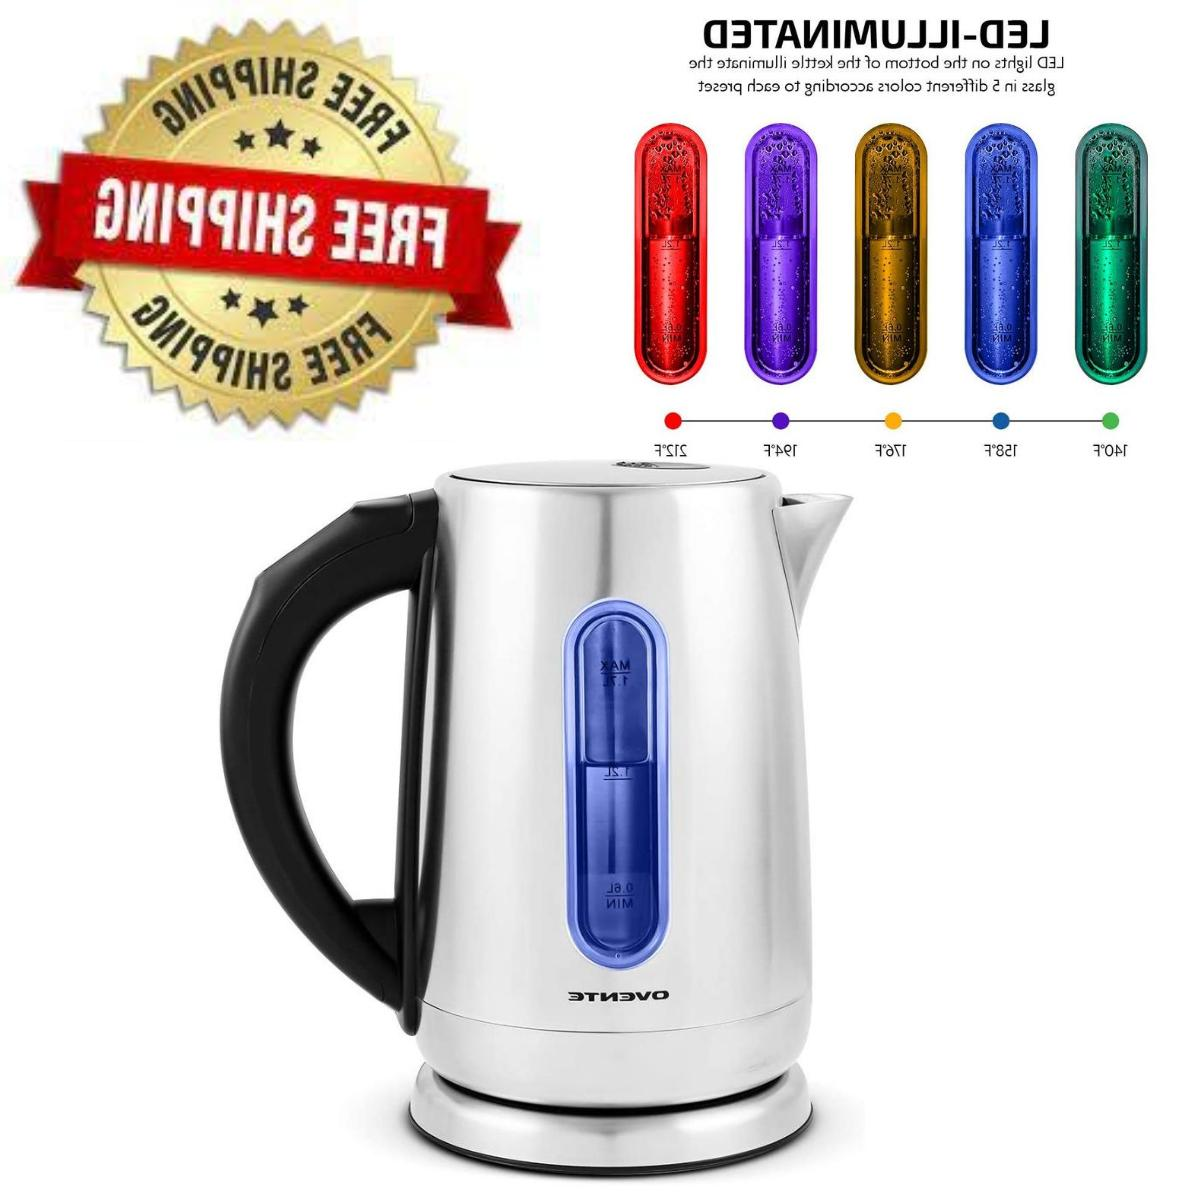 easy electric kettle 1 7 liter water